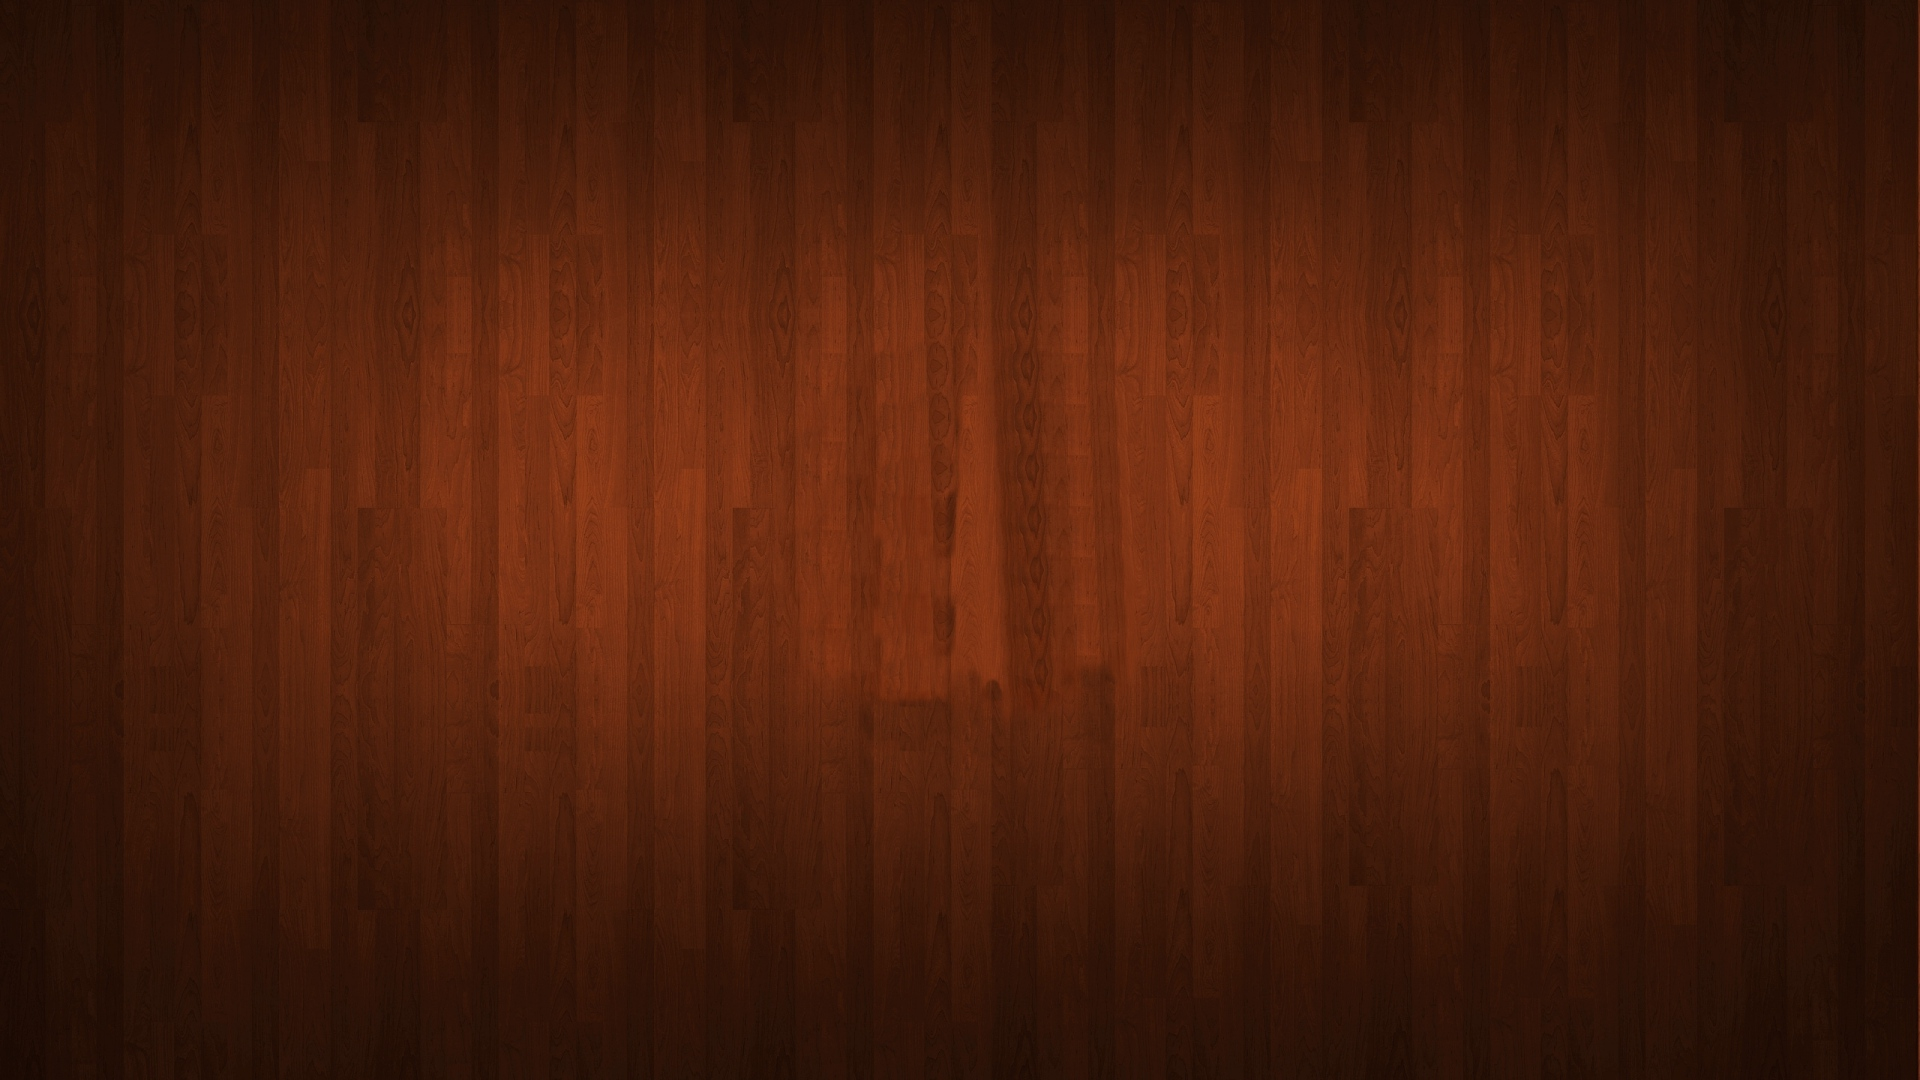 Get The Latest Wooden Solid Dark News Pictures And Videos Learn All About From Wallpapers4uorg Your Wallpaper Source